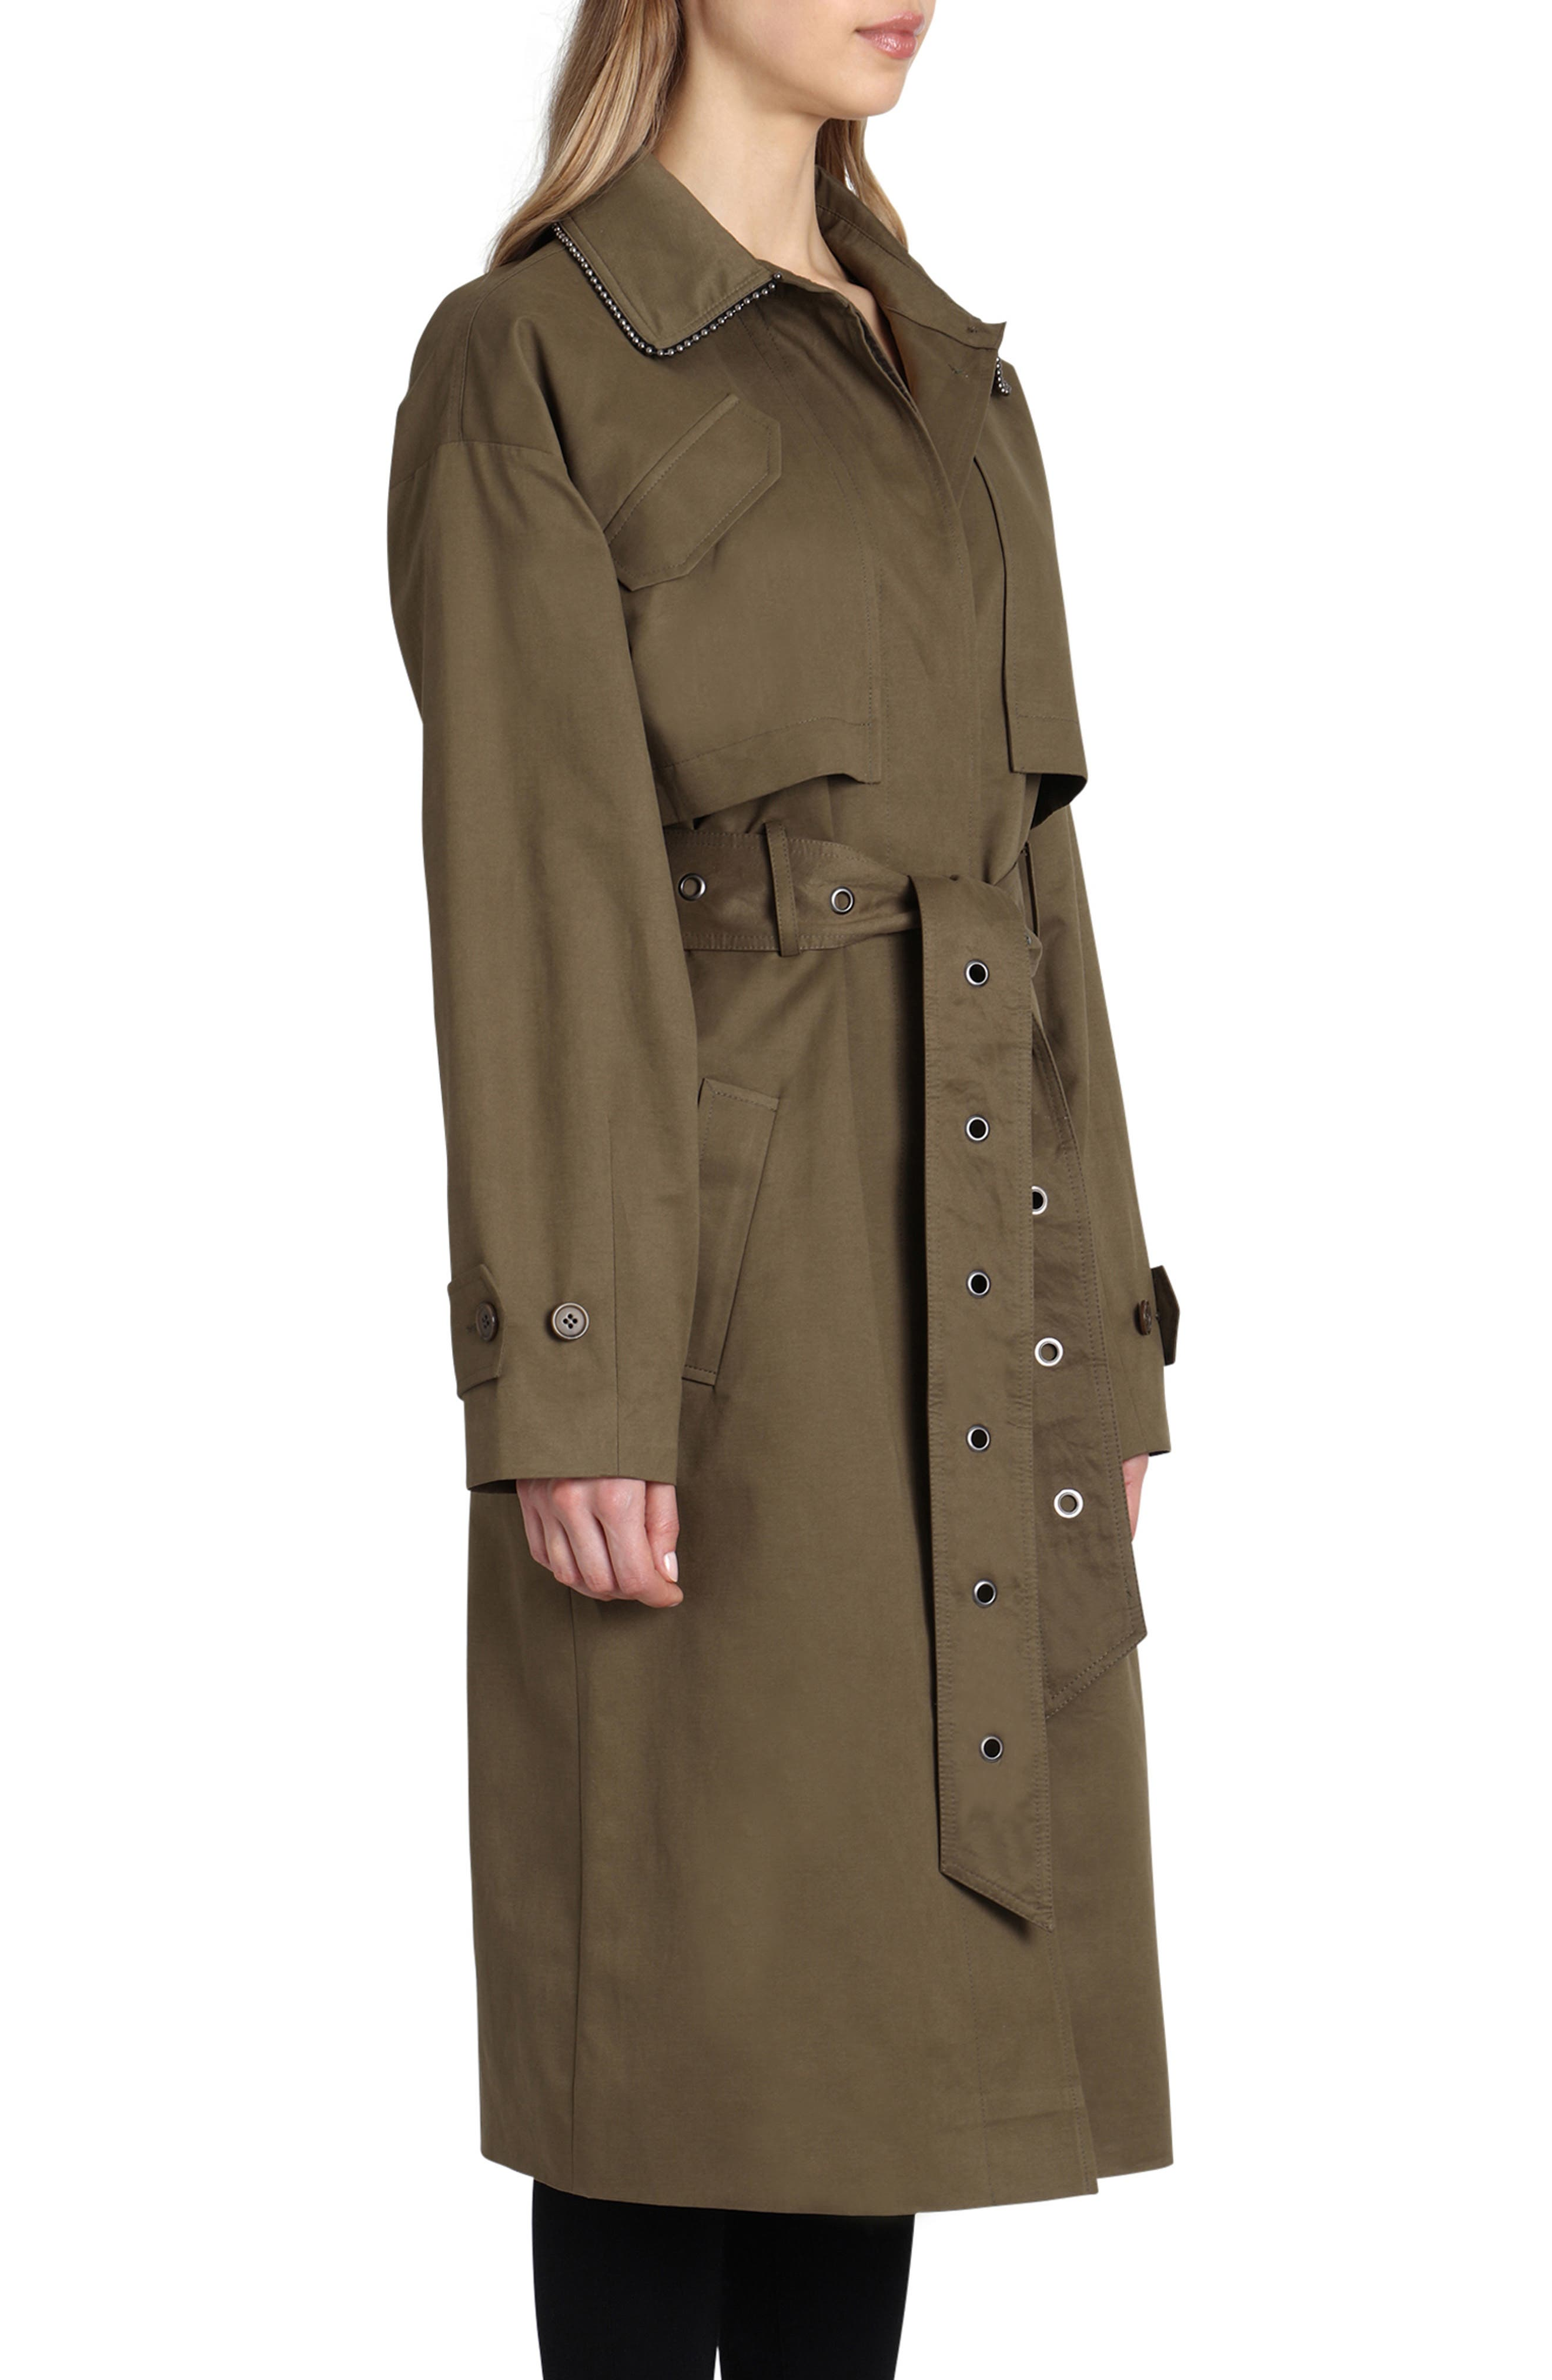 Badgley Mischka Cotton Blend Utility Trench Coat,                             Alternate thumbnail 3, color,                             301